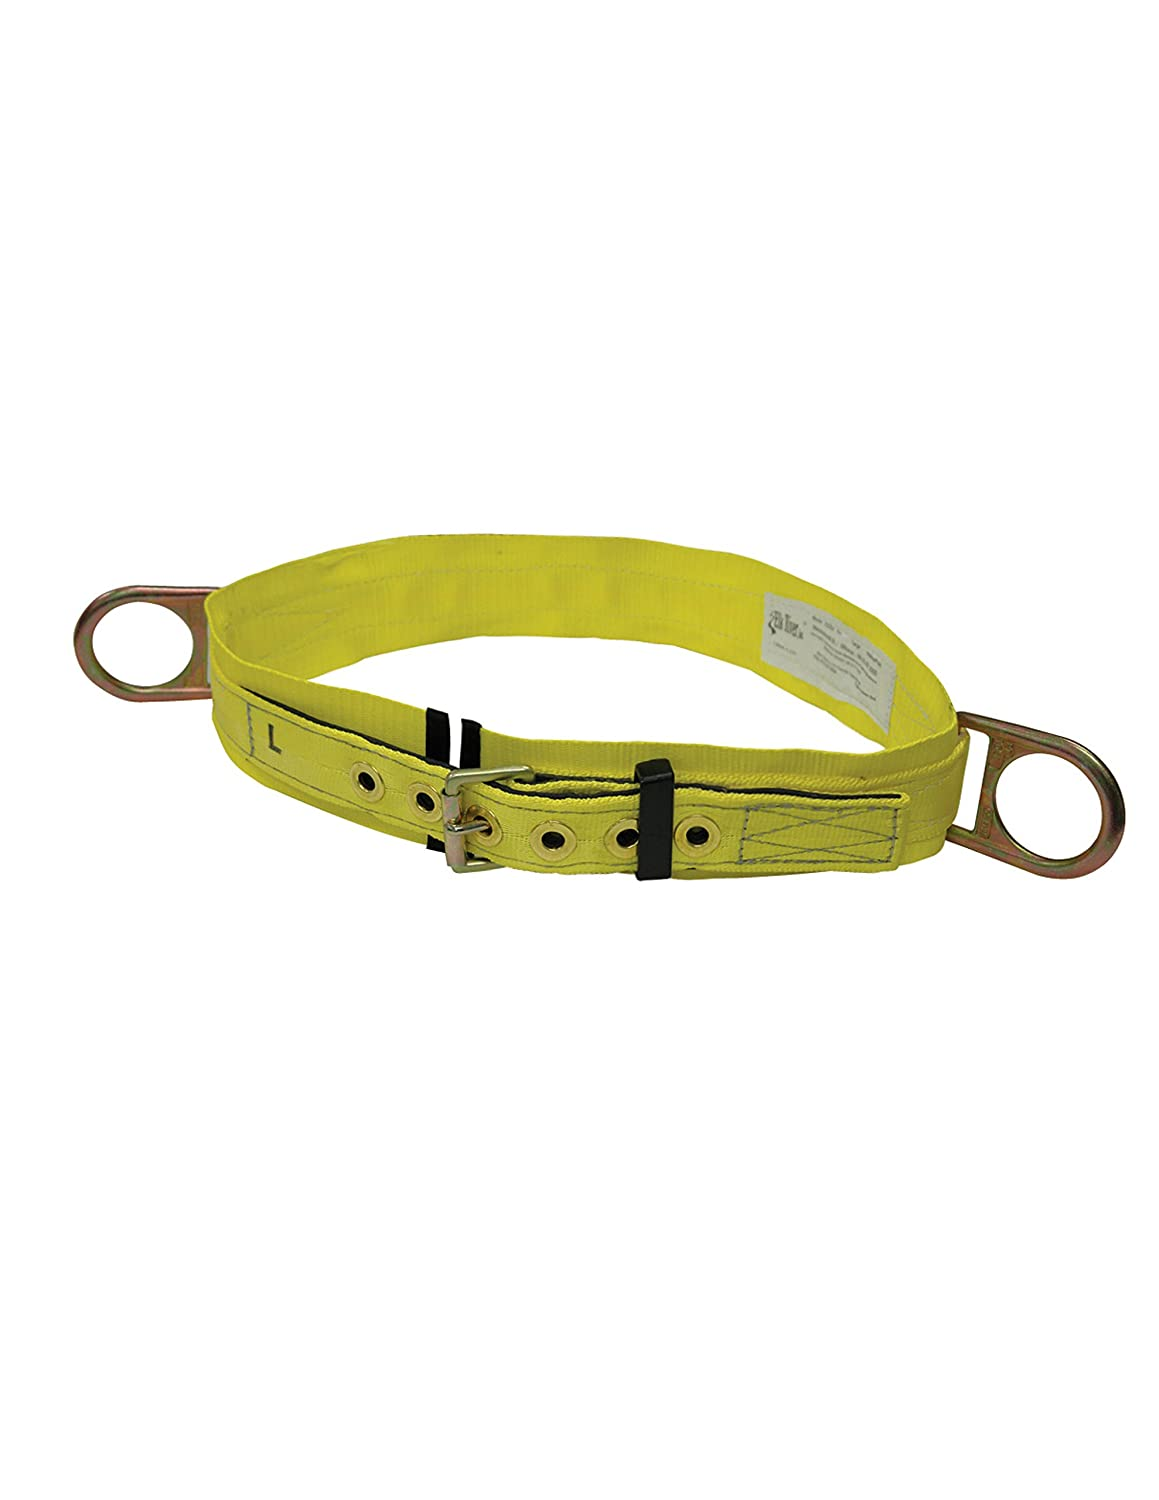 Elk River 03202 Nylon Web Double D Body Work Belt with 3 Pad and 2 D-Rings, Medium by Elk River